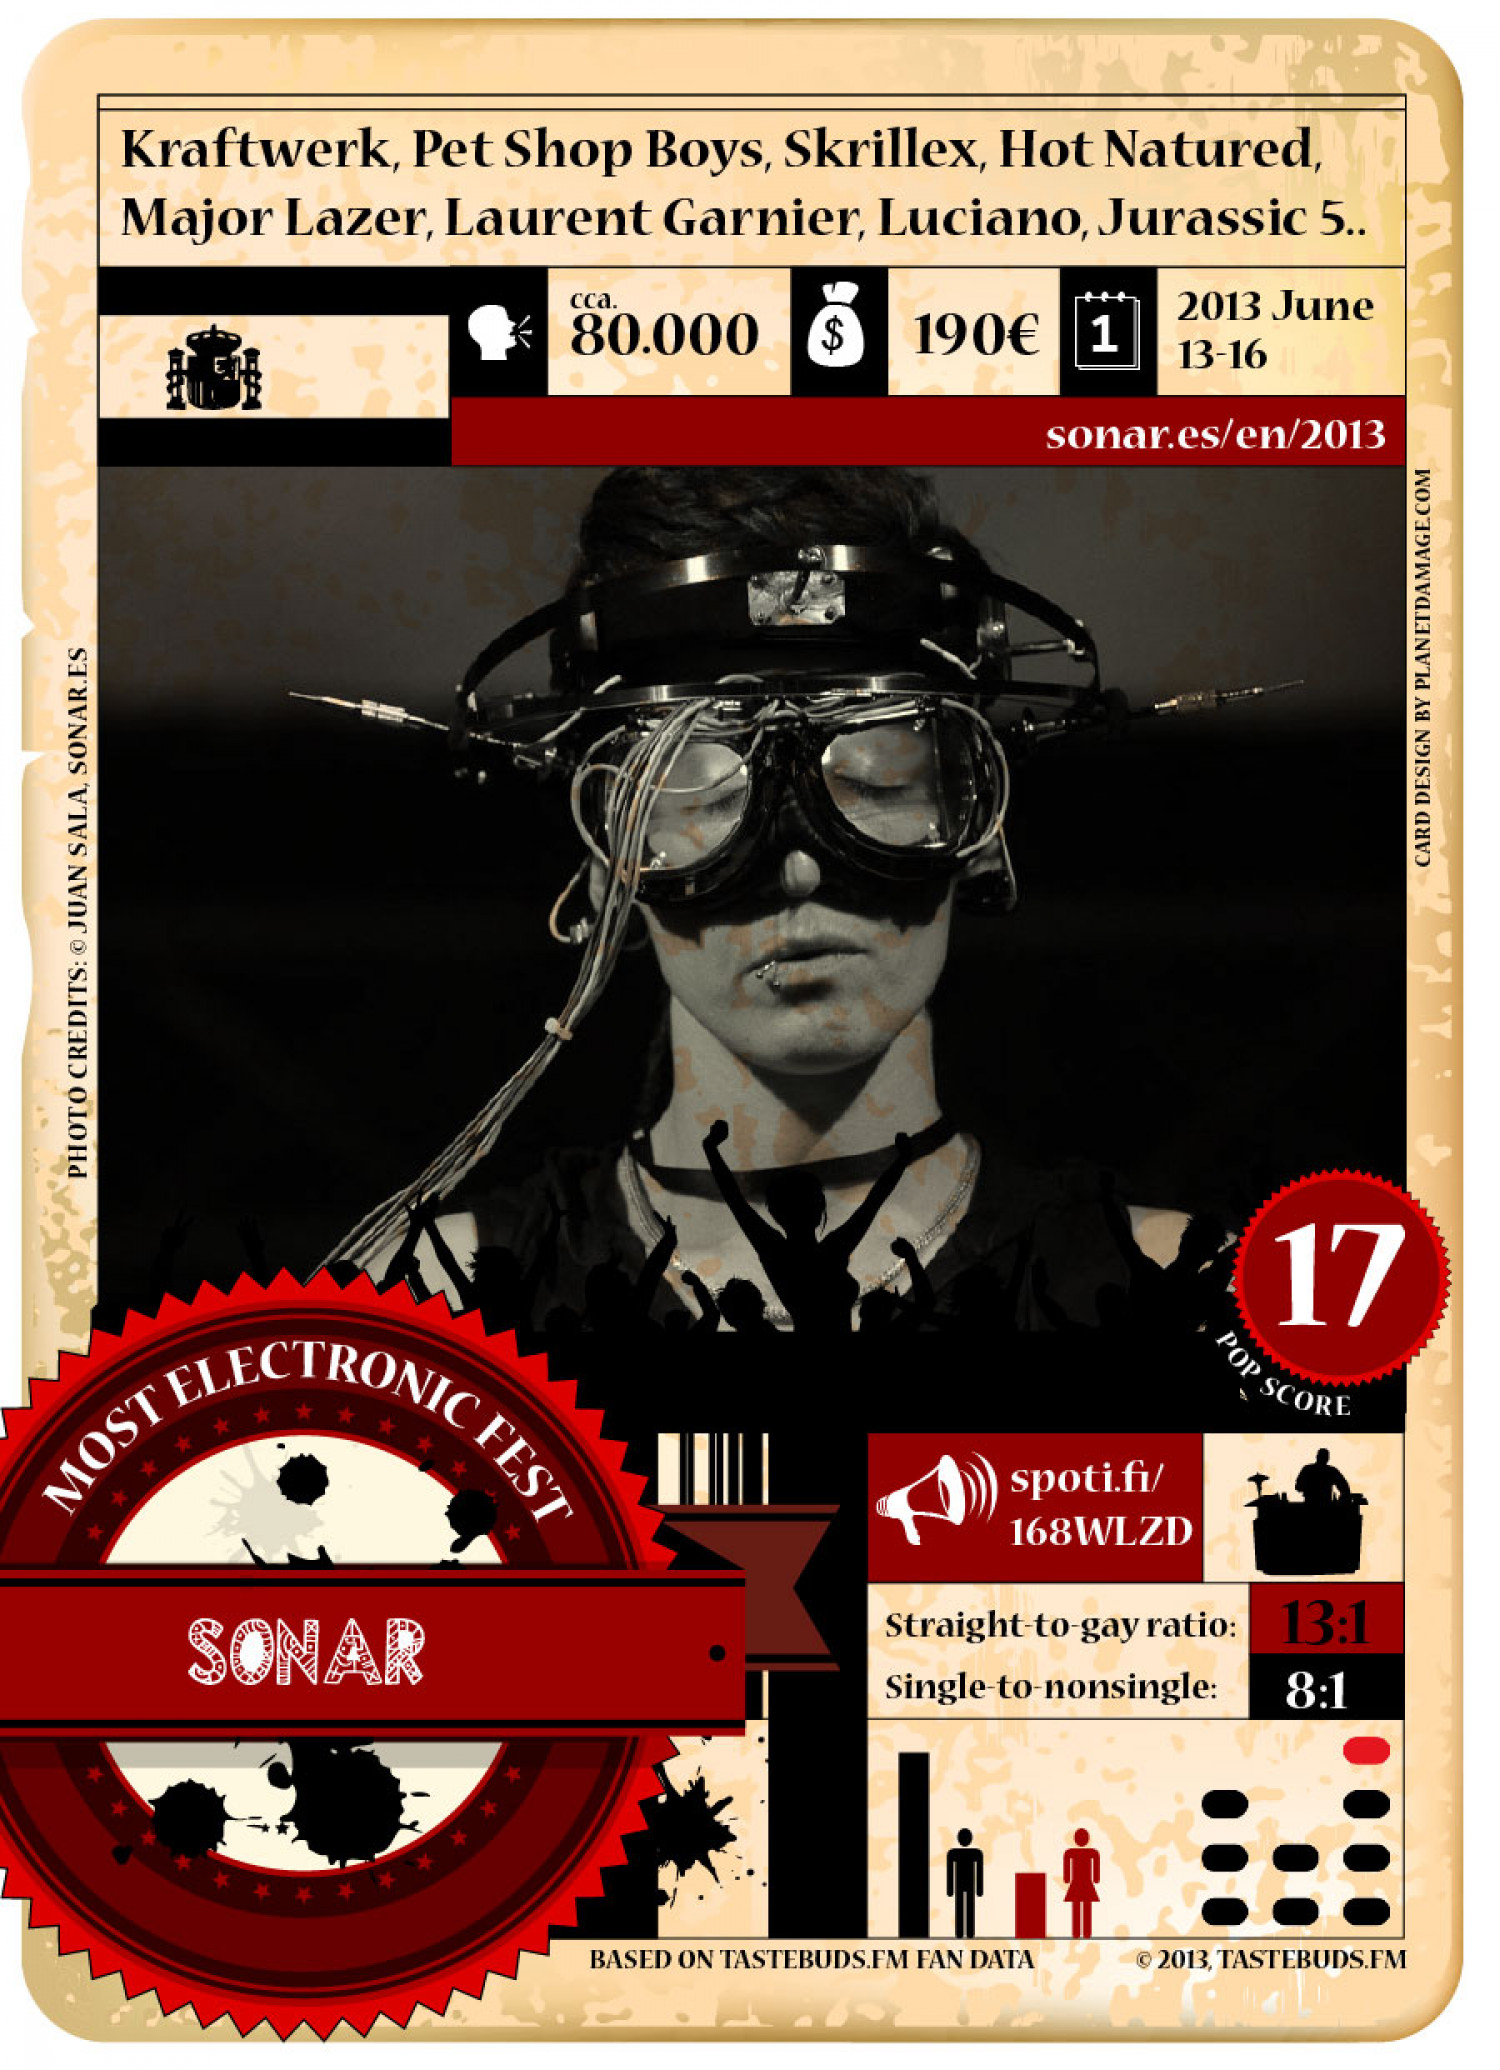 2013 Music Fest Infographic Trading Card: Sonar Infographic